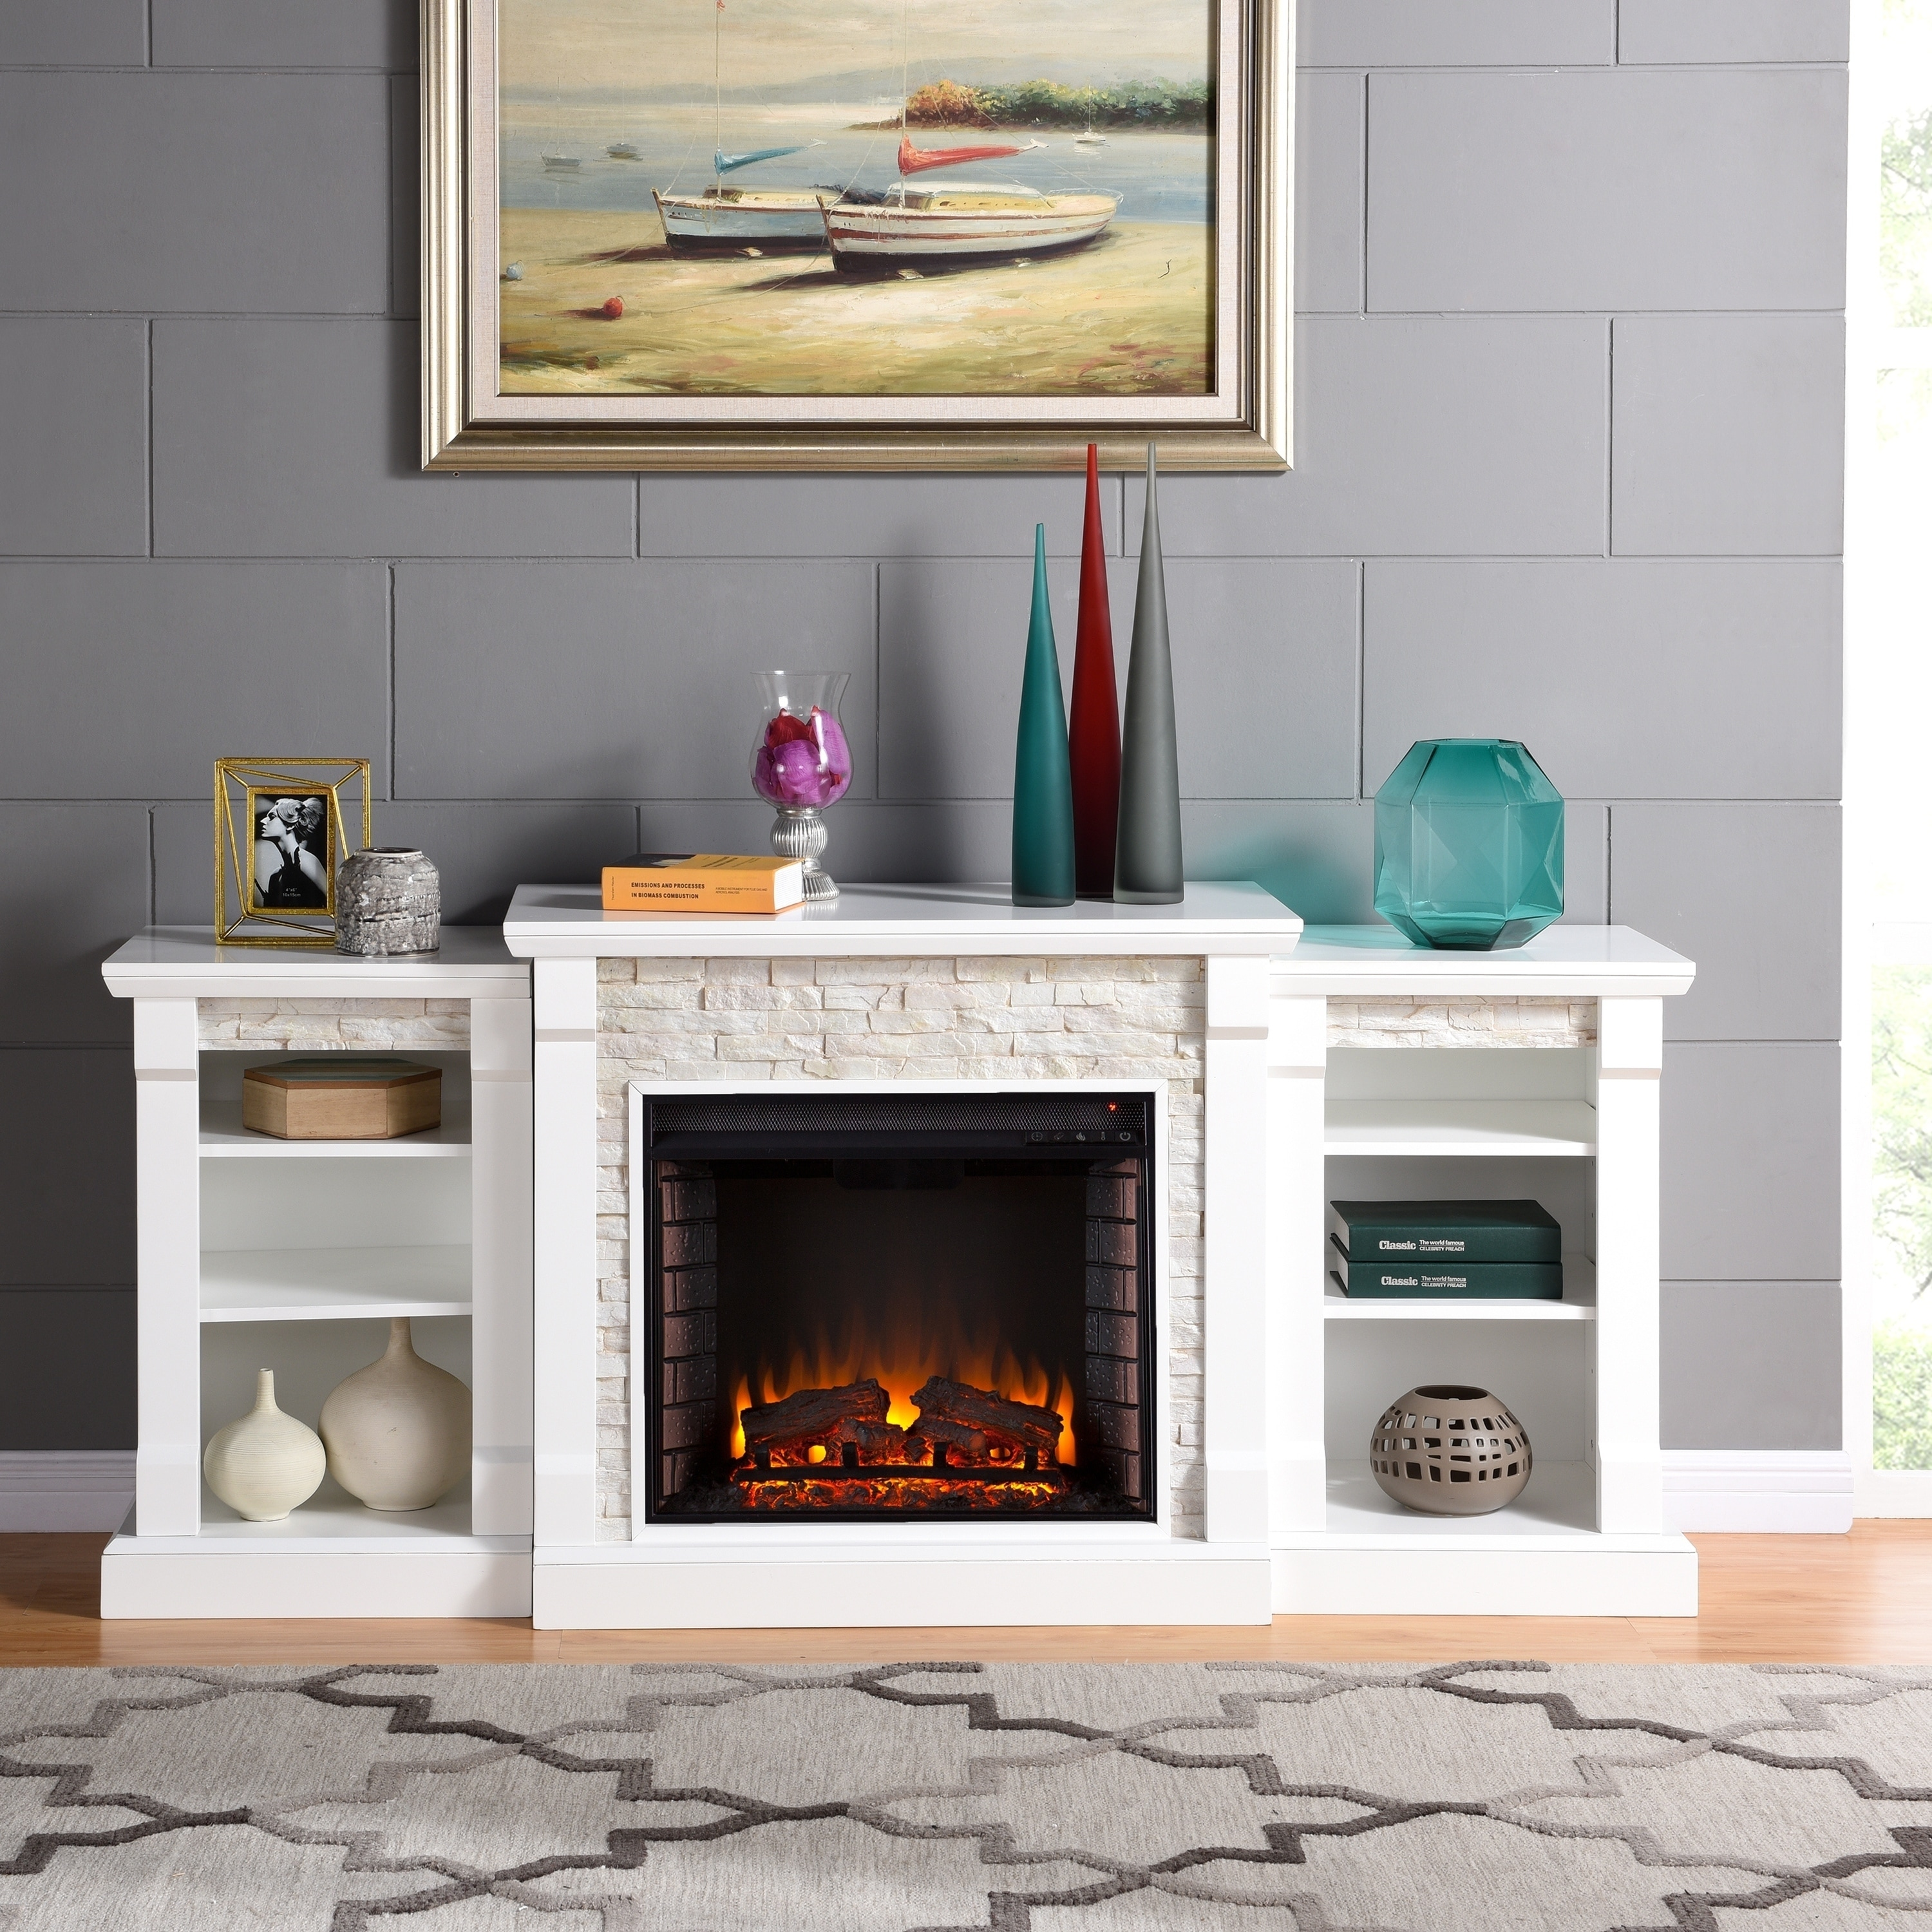 Artificial Fireplaces Buy Electric Fireplaces Online At Overstock Our Best Decorative